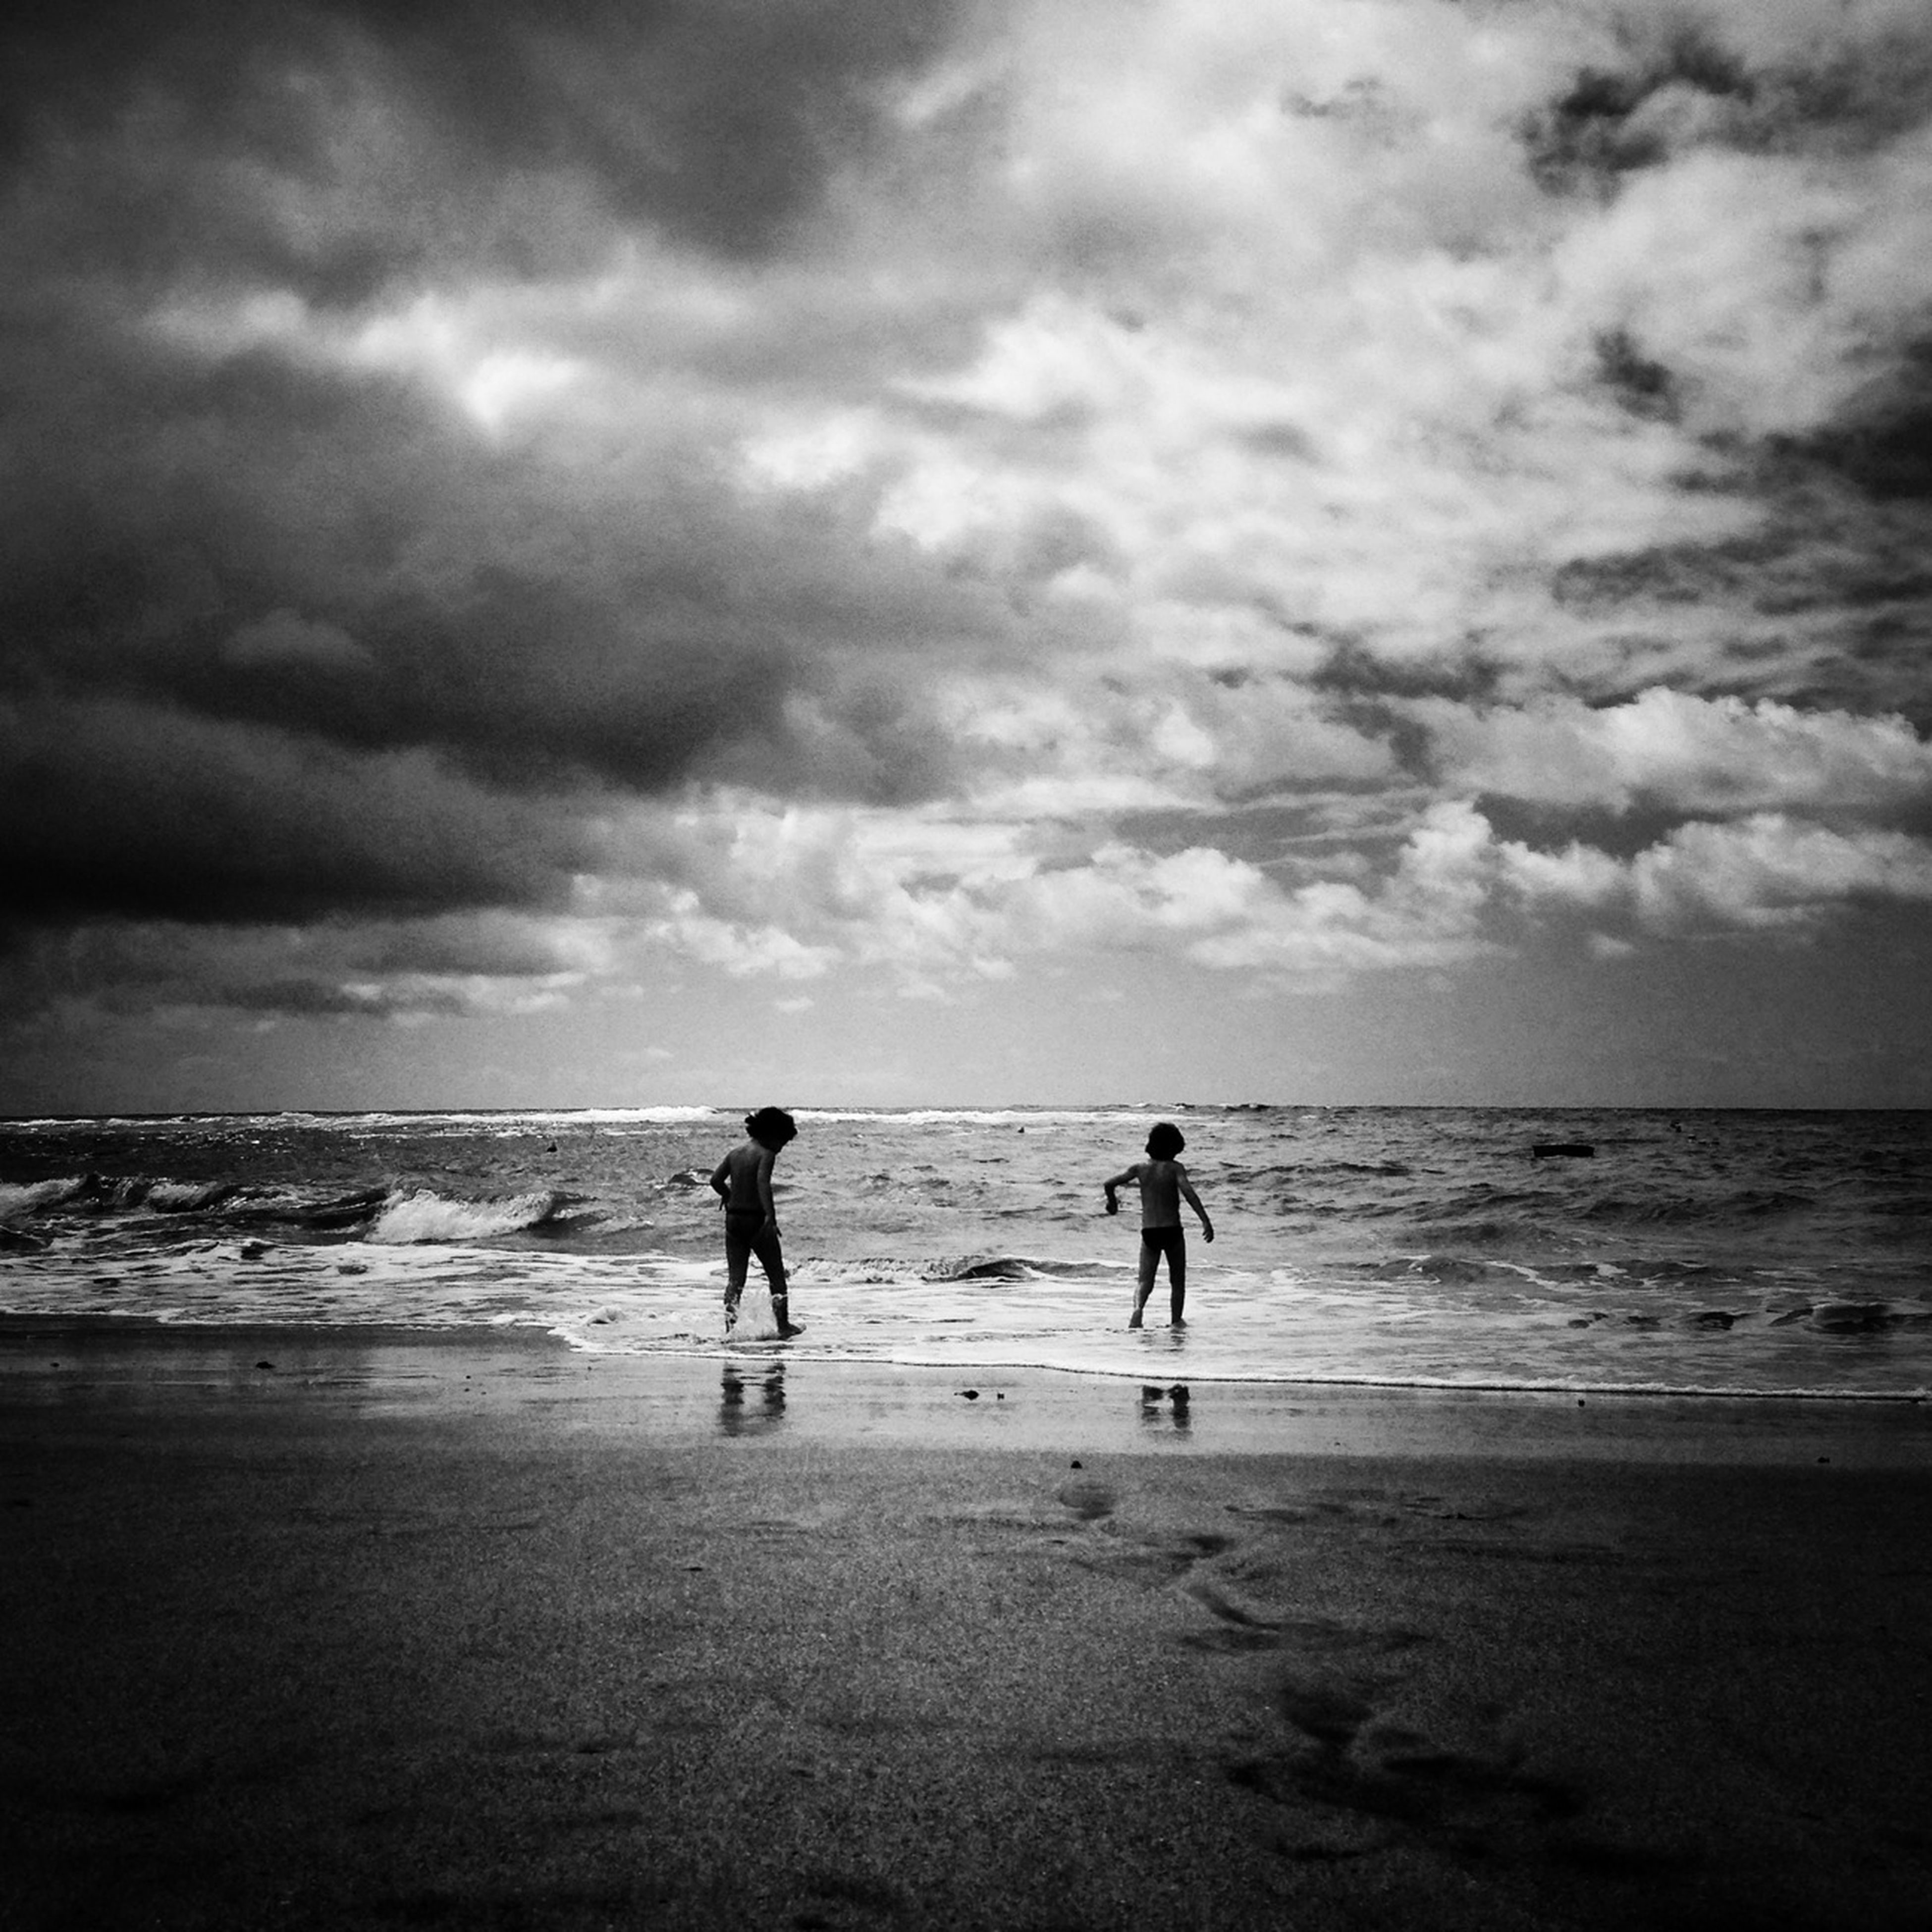 sea, beach, horizon over water, sky, water, cloud - sky, shore, leisure activity, lifestyles, cloudy, scenics, togetherness, men, vacations, beauty in nature, cloud, nature, full length, silhouette